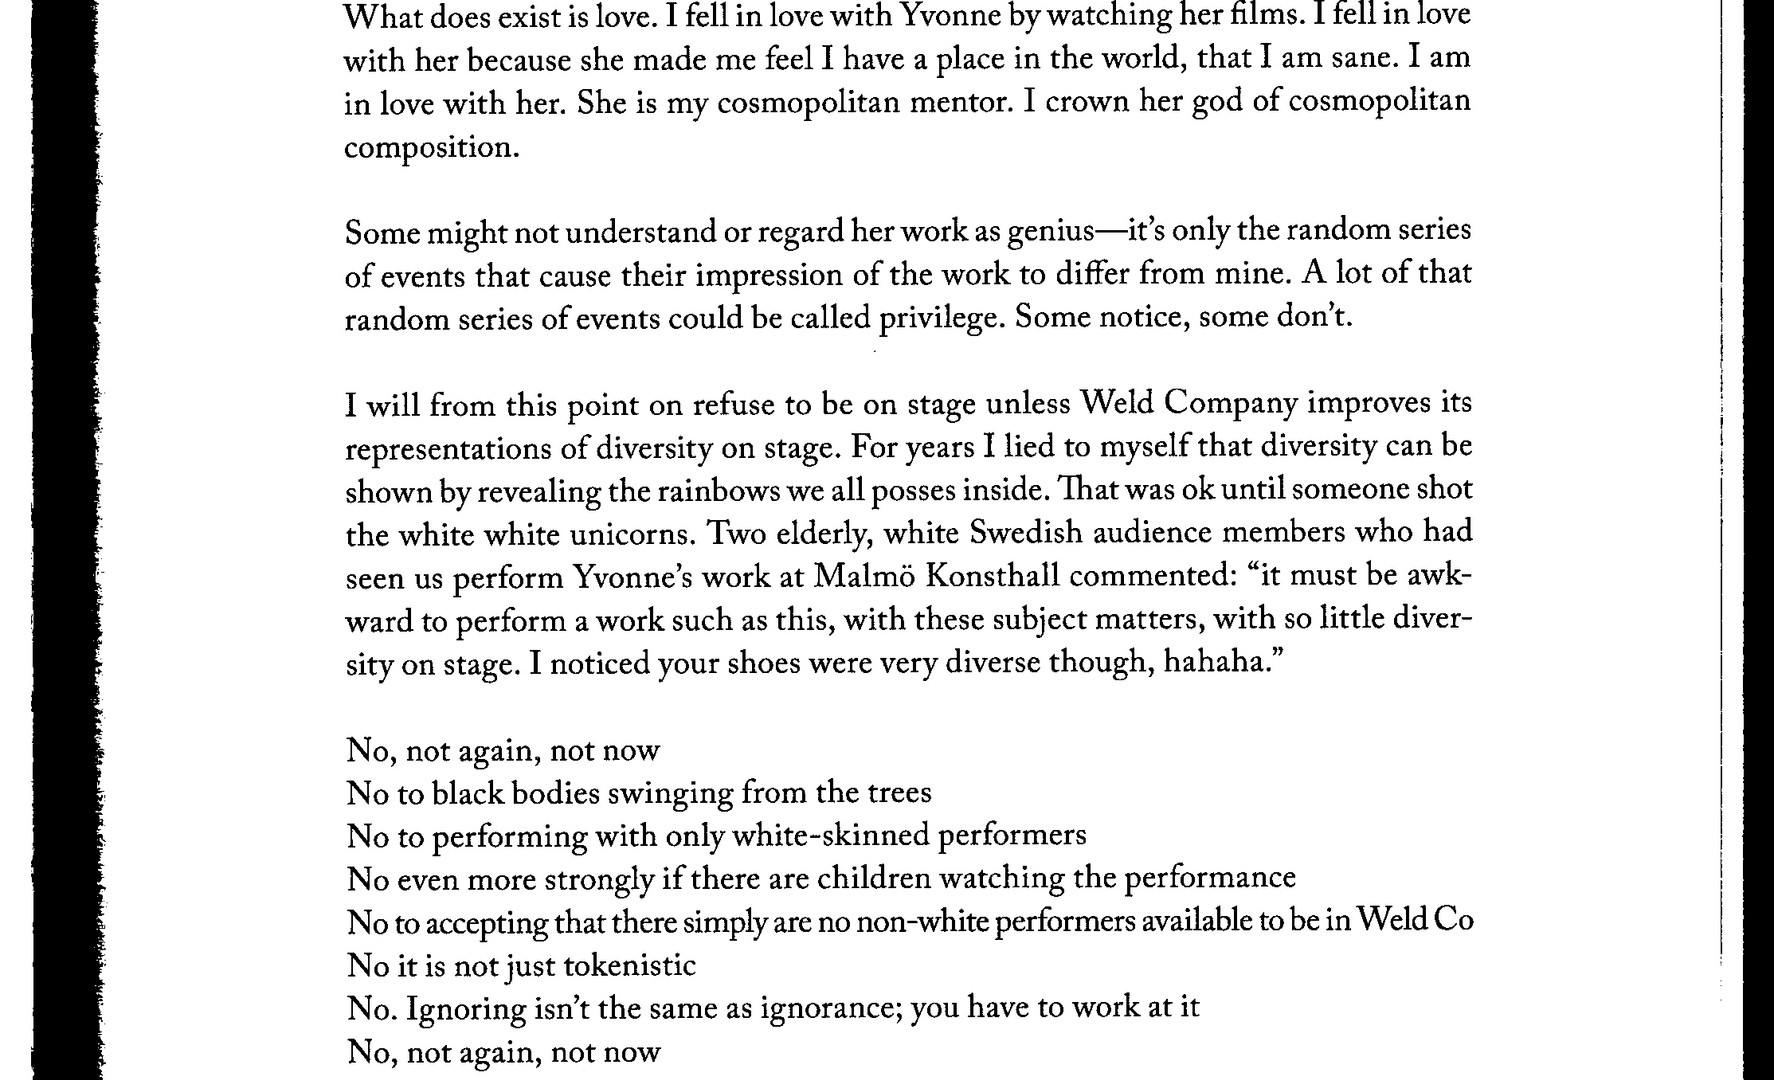 No Talking No Props Weld Company & Yvonne Rainer 2019 Robin Dingemans page 5